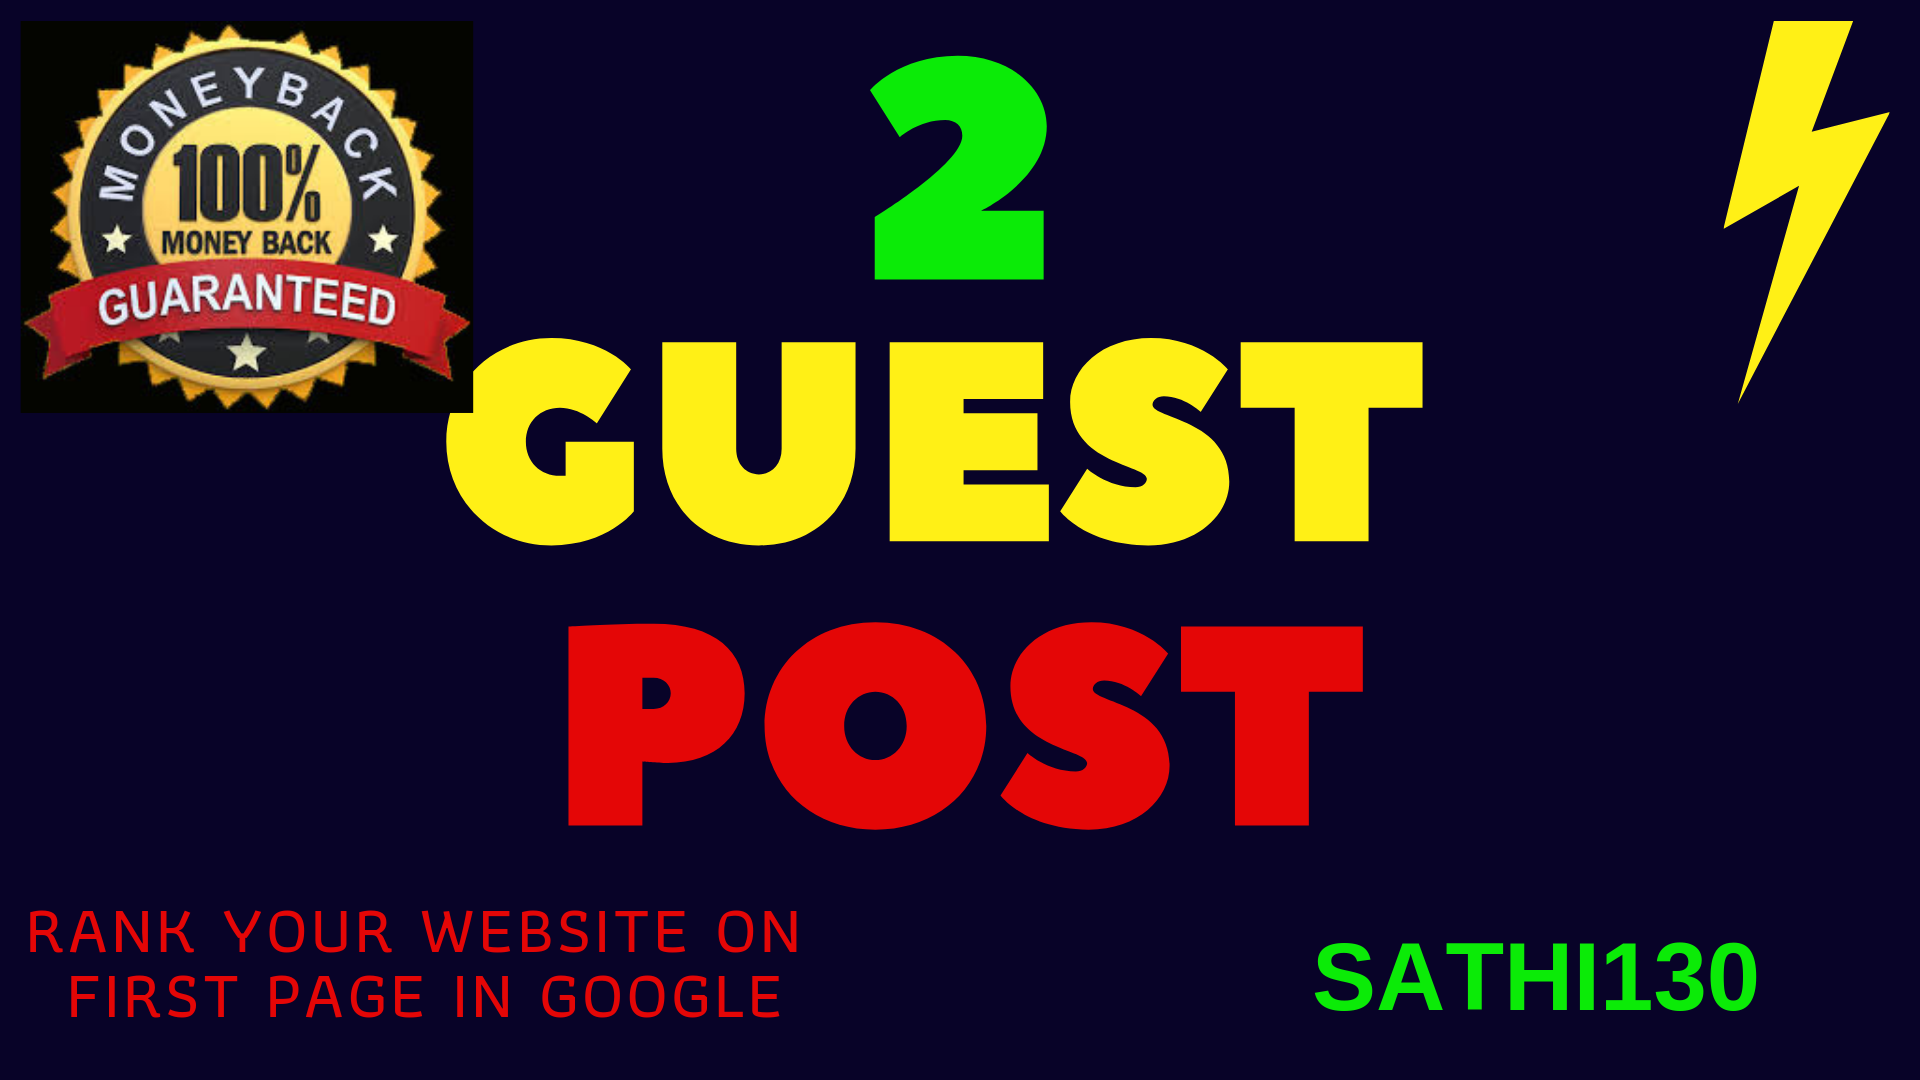 Submit your 2 guest posts to kinja behance in the most popular websites